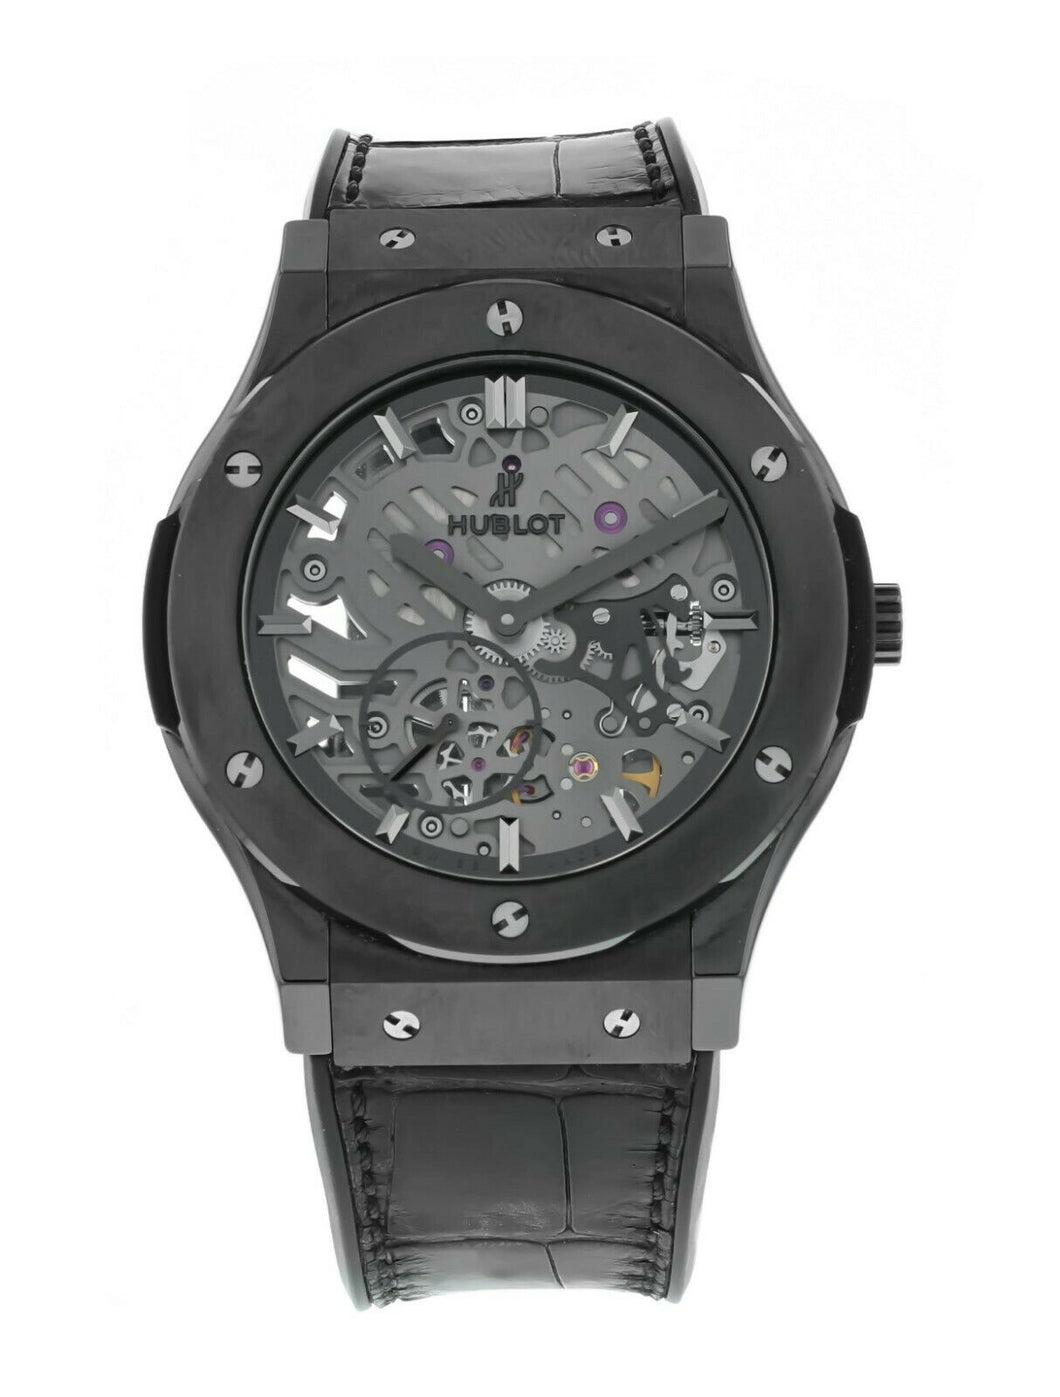 Hublot Classic Fusion Ultra-Thin Hand Wind Skeleton Dial Men's 45mm Watch